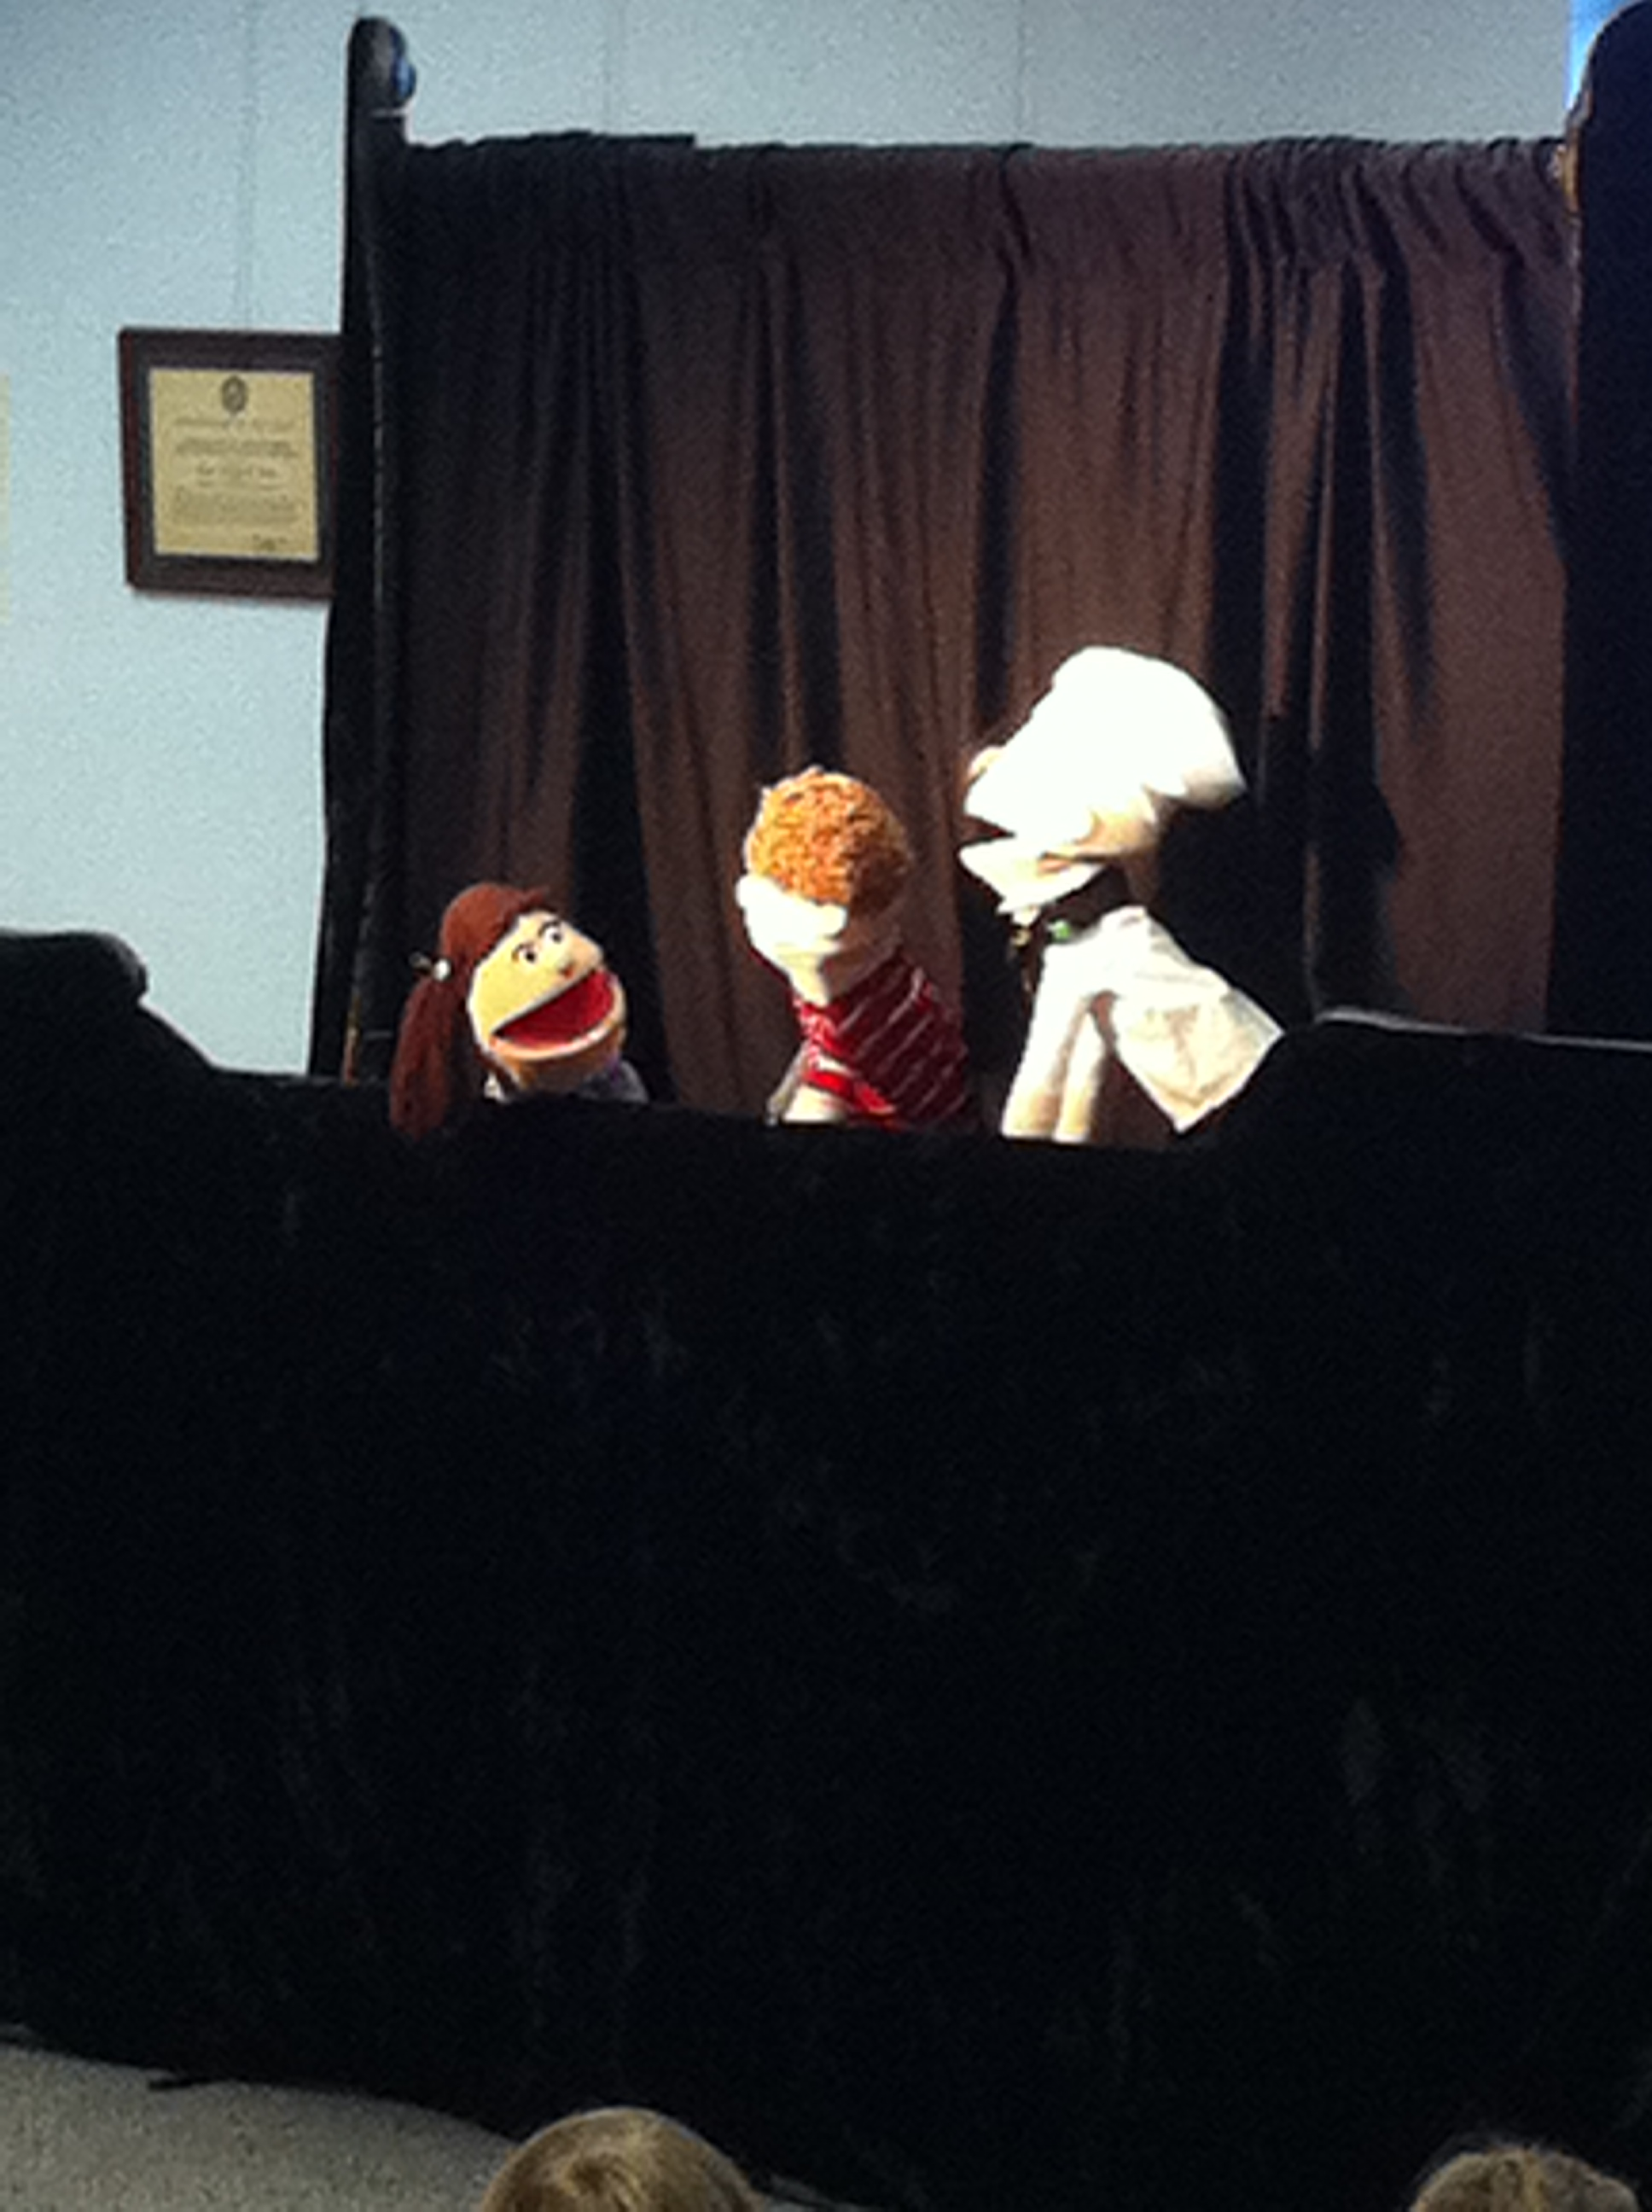 Puppets put on a show for children